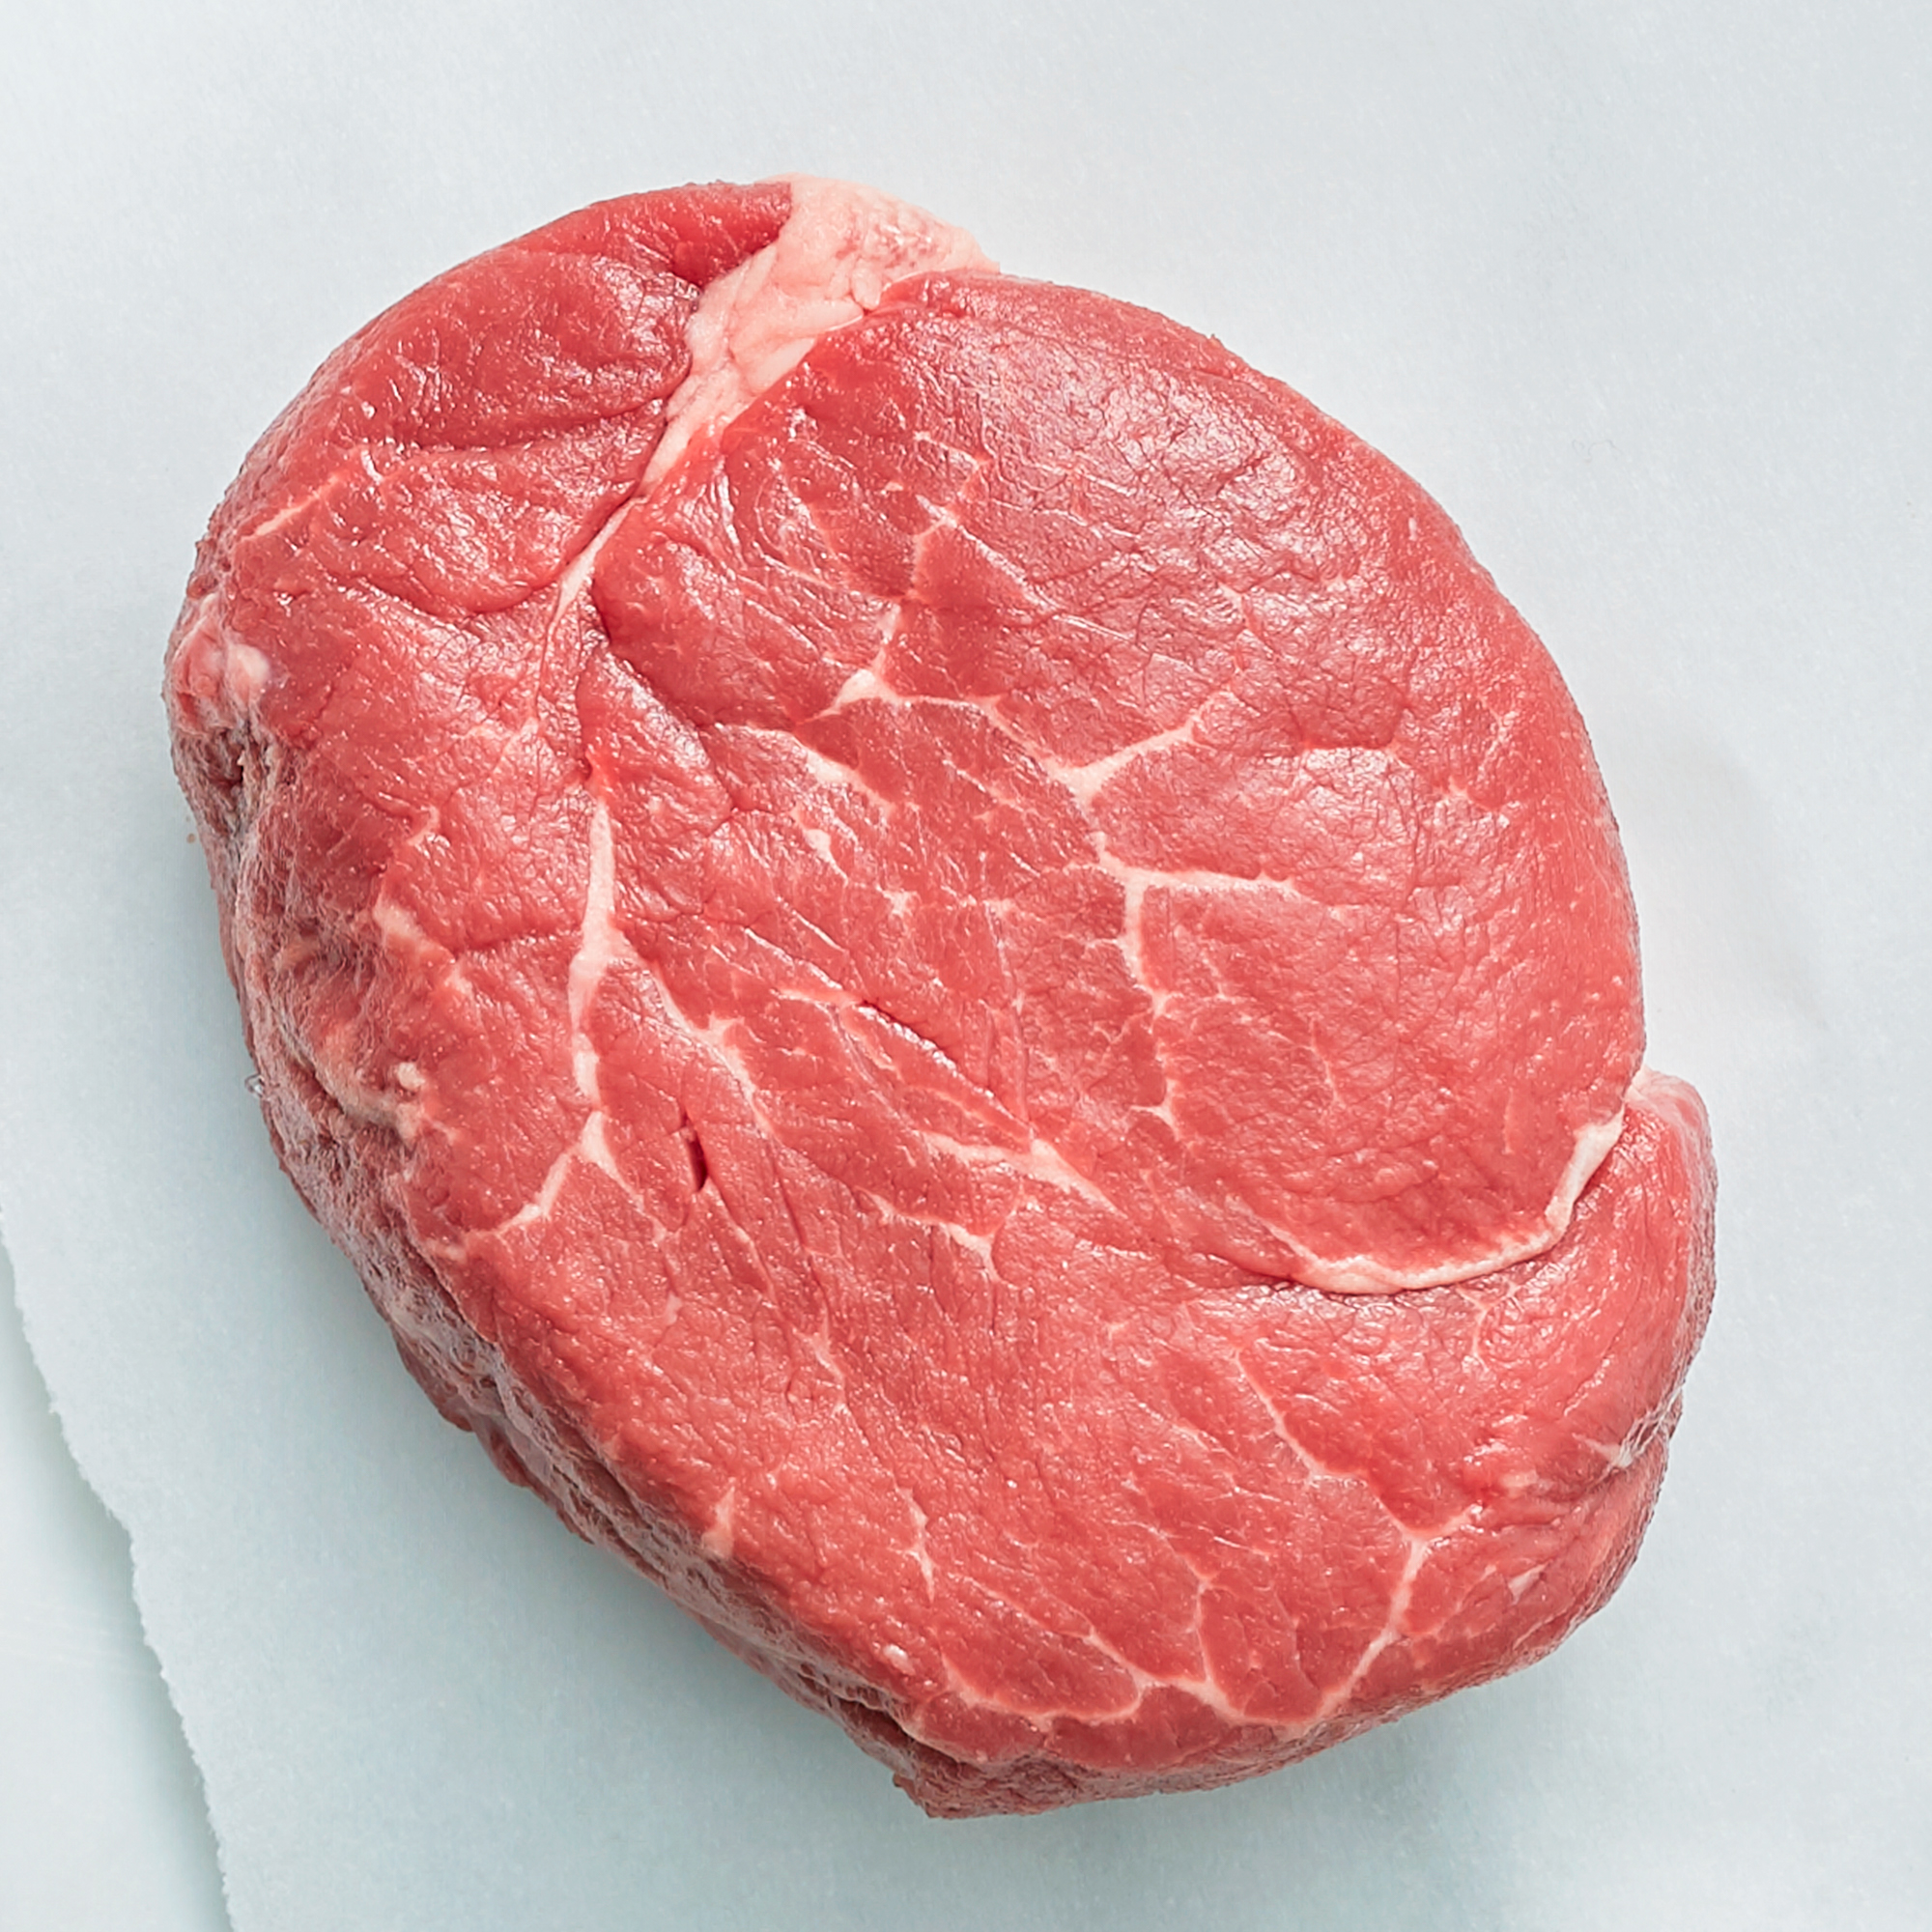 (12) 8 oz. Pfaelzer Famous Filet Mignon - Ships frozen & raw